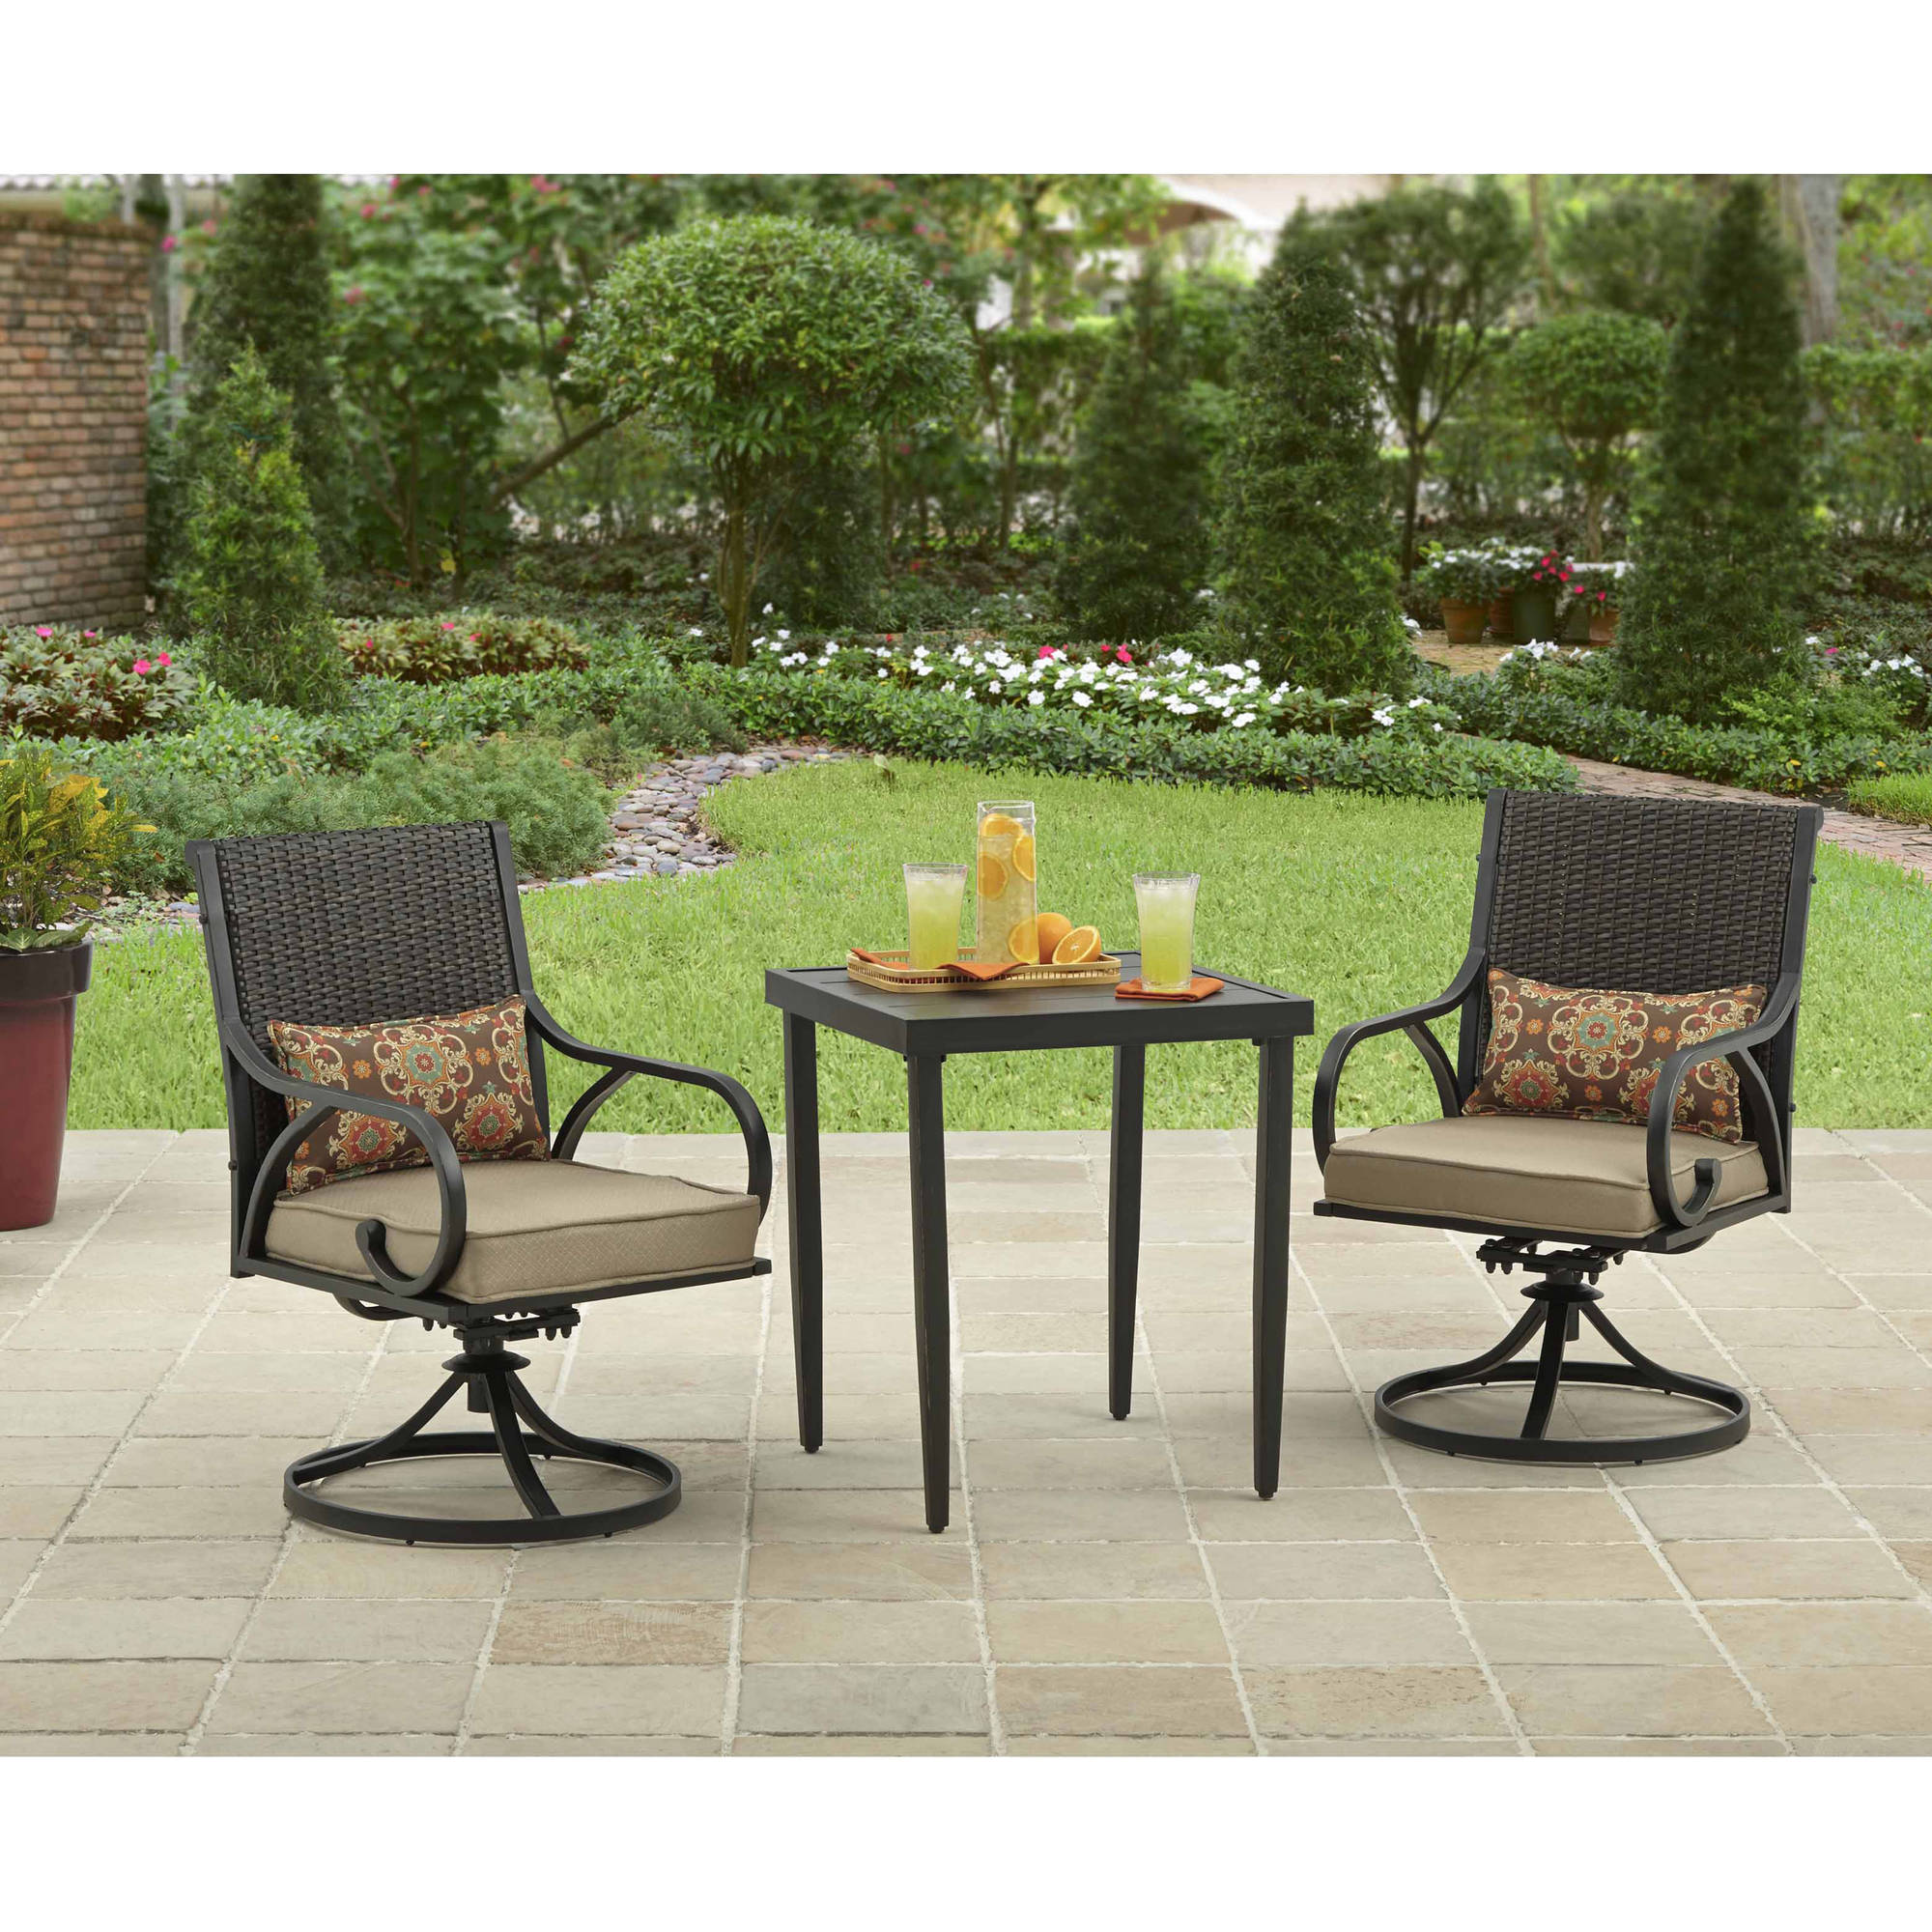 furniture garden wonderful of outdoor patio clearance